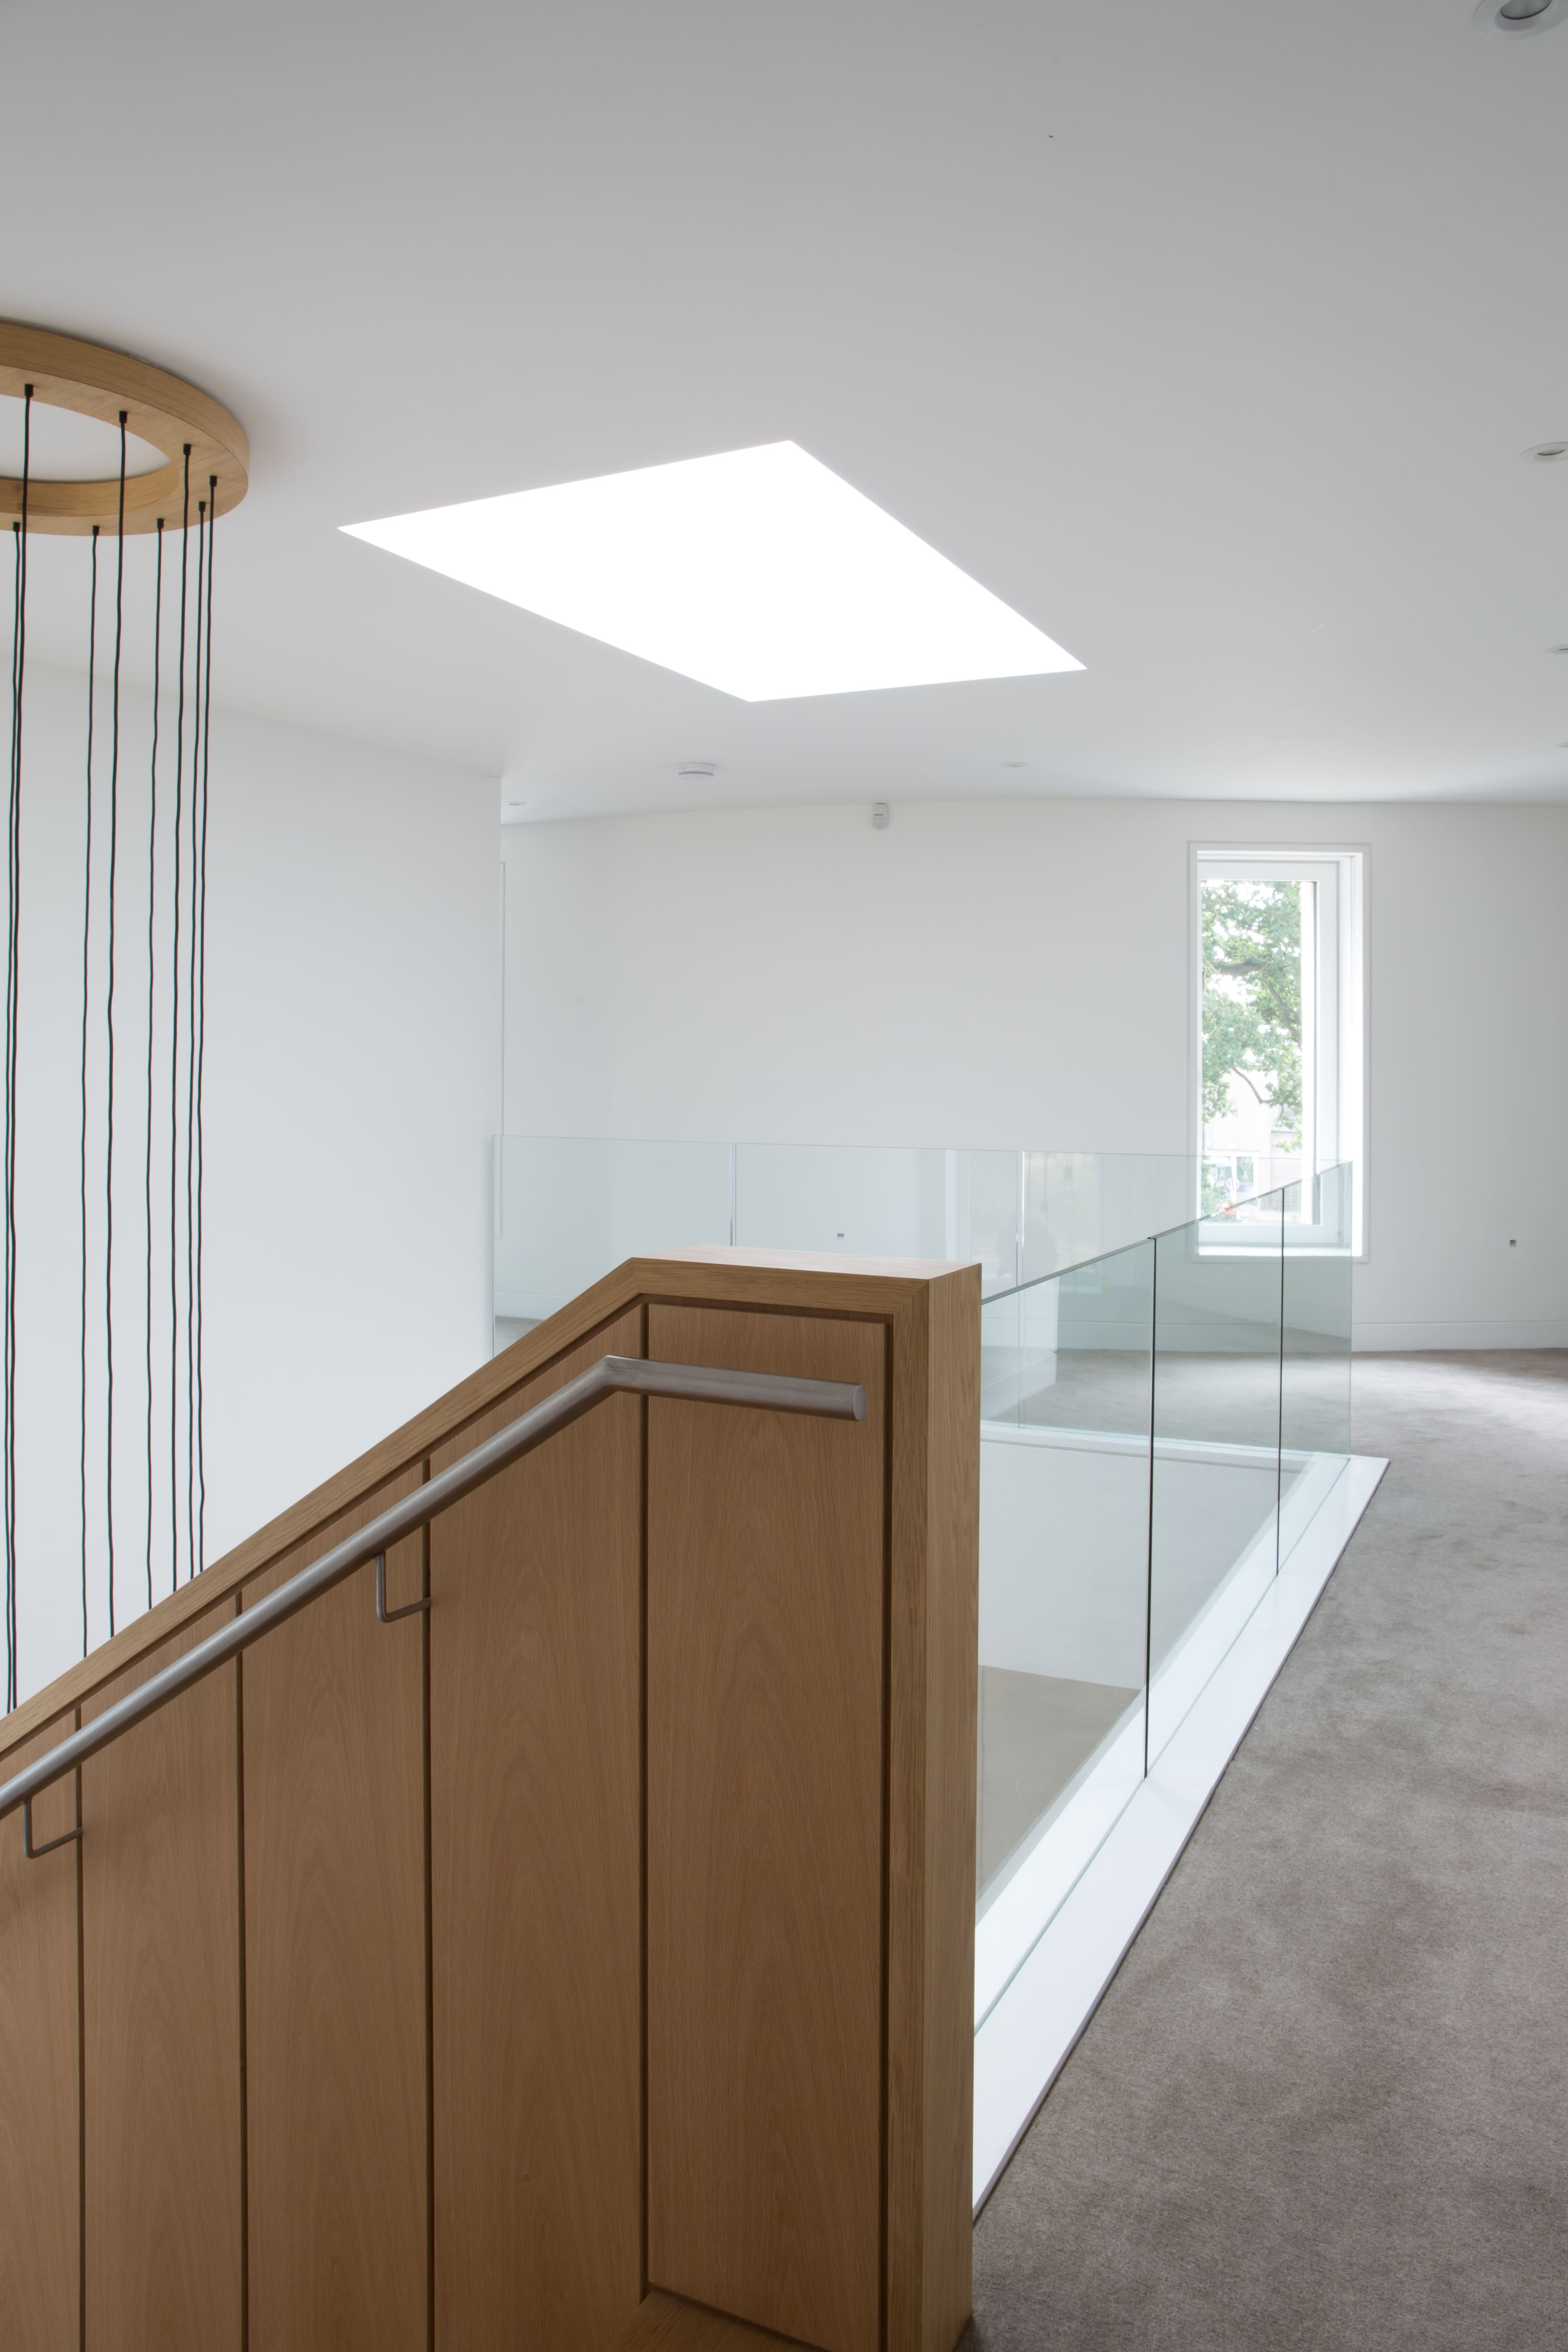 internal glass balustrade fixed in a residential property in bristol